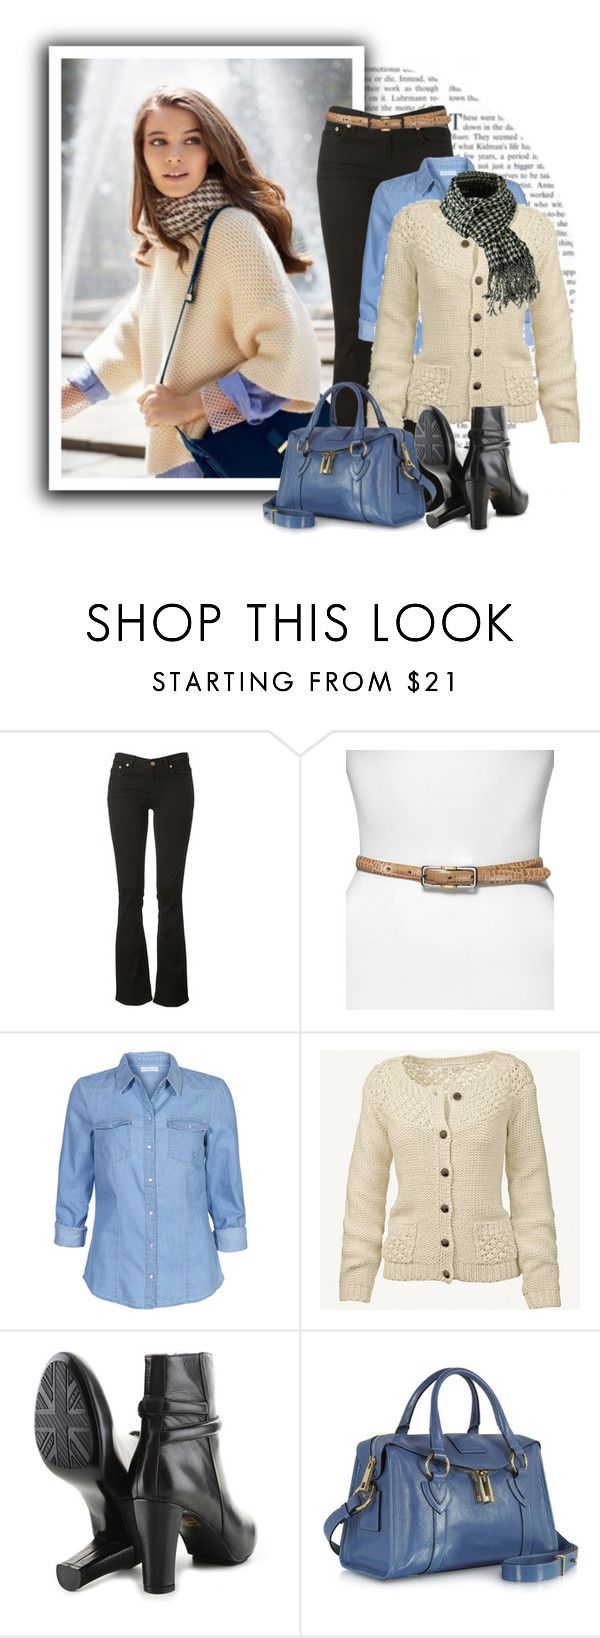 """Untitled #2039"" by johnna-cameron ❤ liked on Polyvore featuring Lauren Ralph Lauren, ONLY, Fat Face and Marc Jacobs"